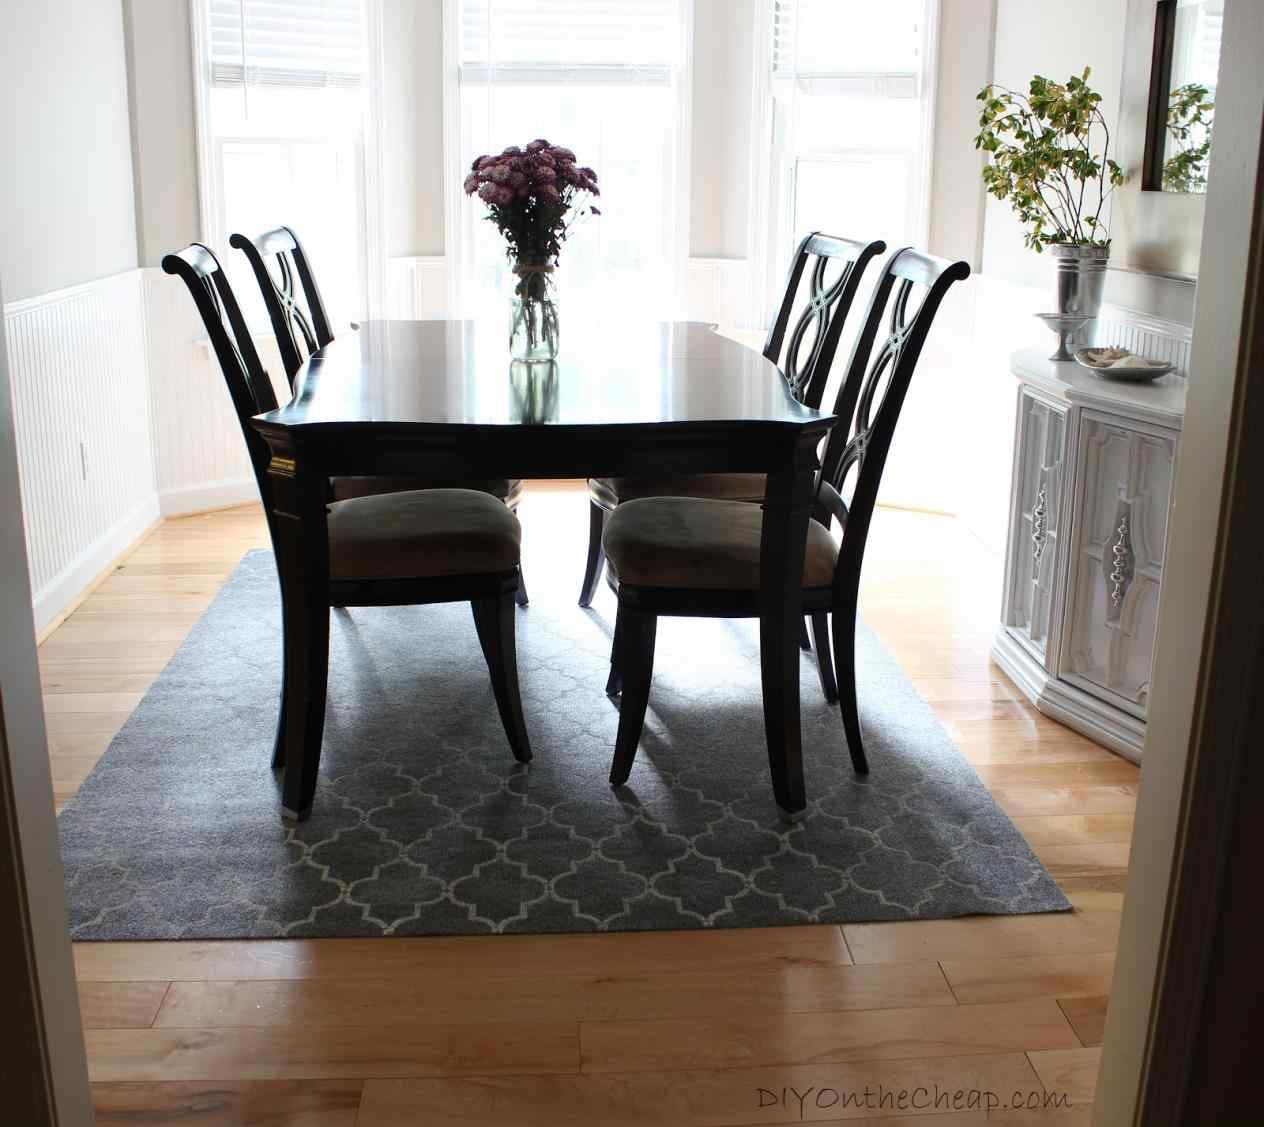 Dining Room Rugs Ideas  Rugs Online  Pinterest  Room Rugs And Room Interesting Dining Room Rugs Design Ideas